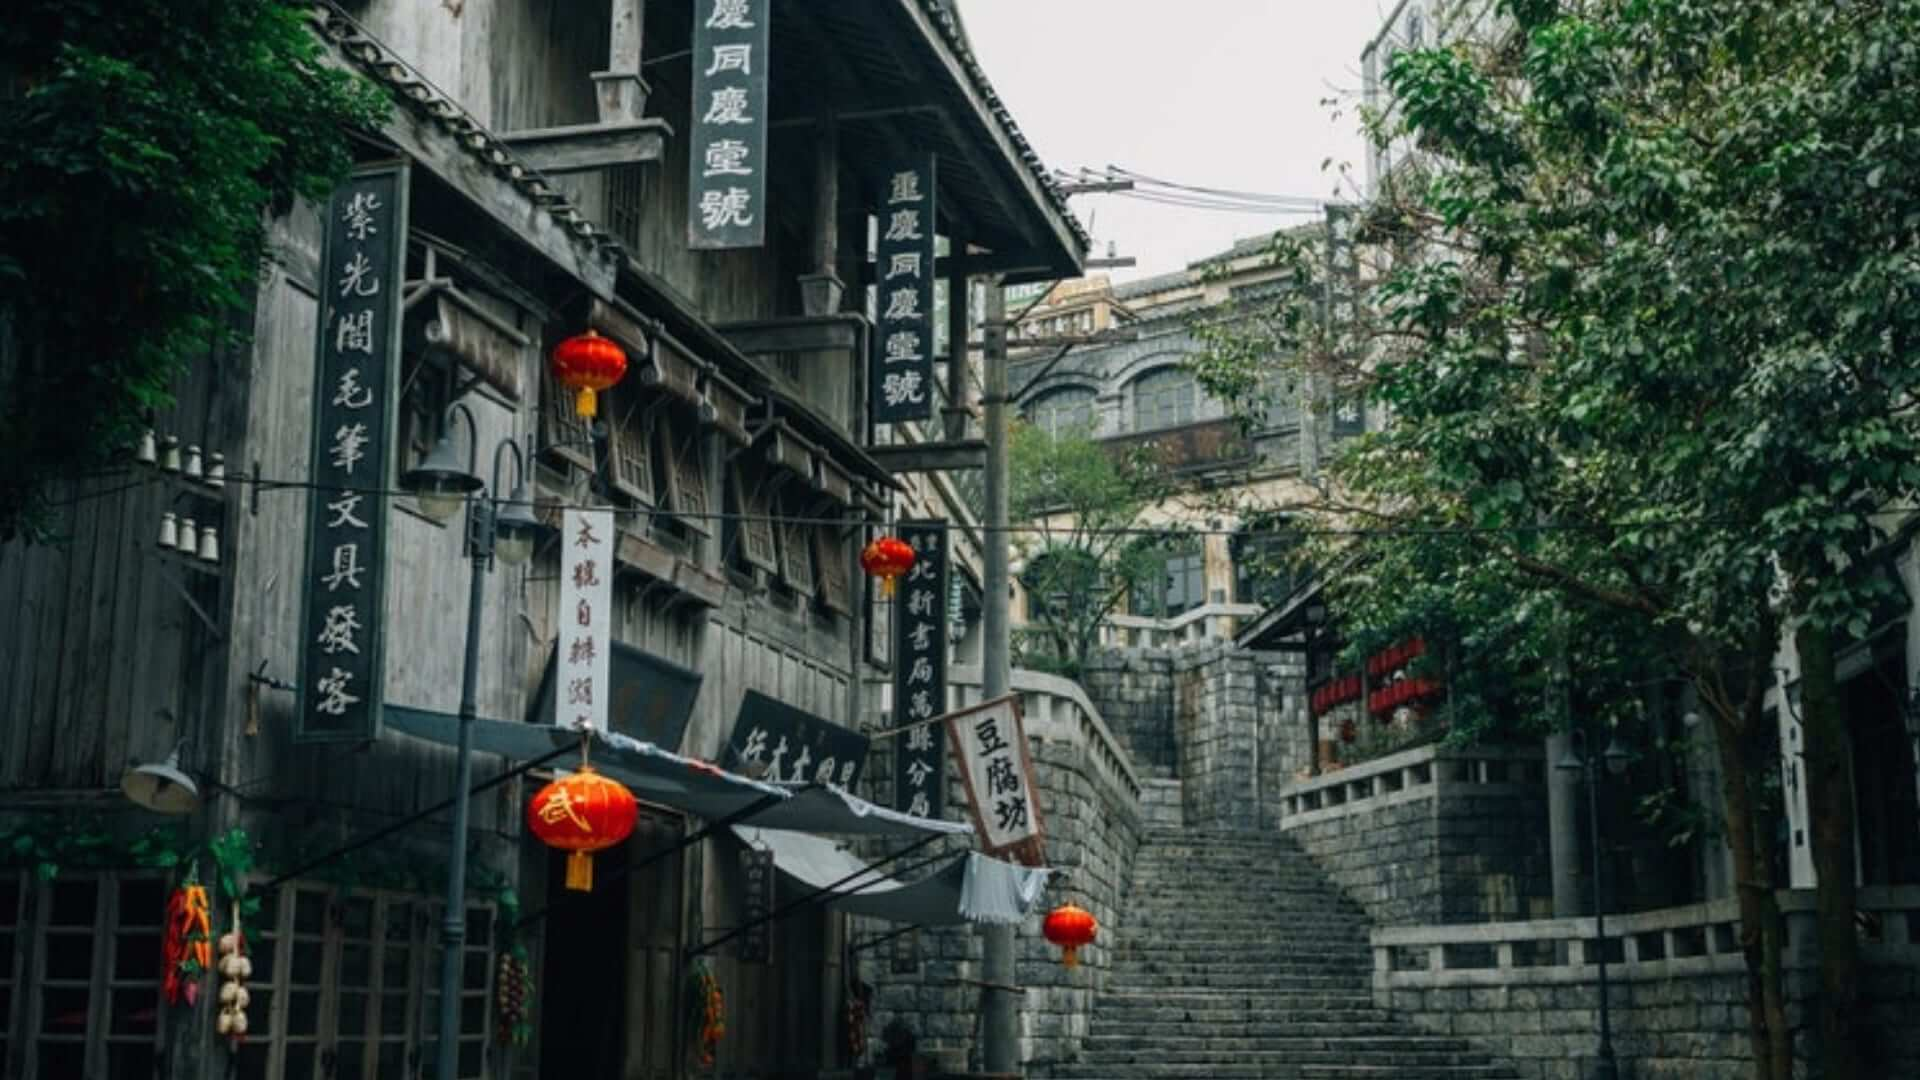 Red lanterns and plates with Chinese characters are hanging on a building in a street with a staircase in China.